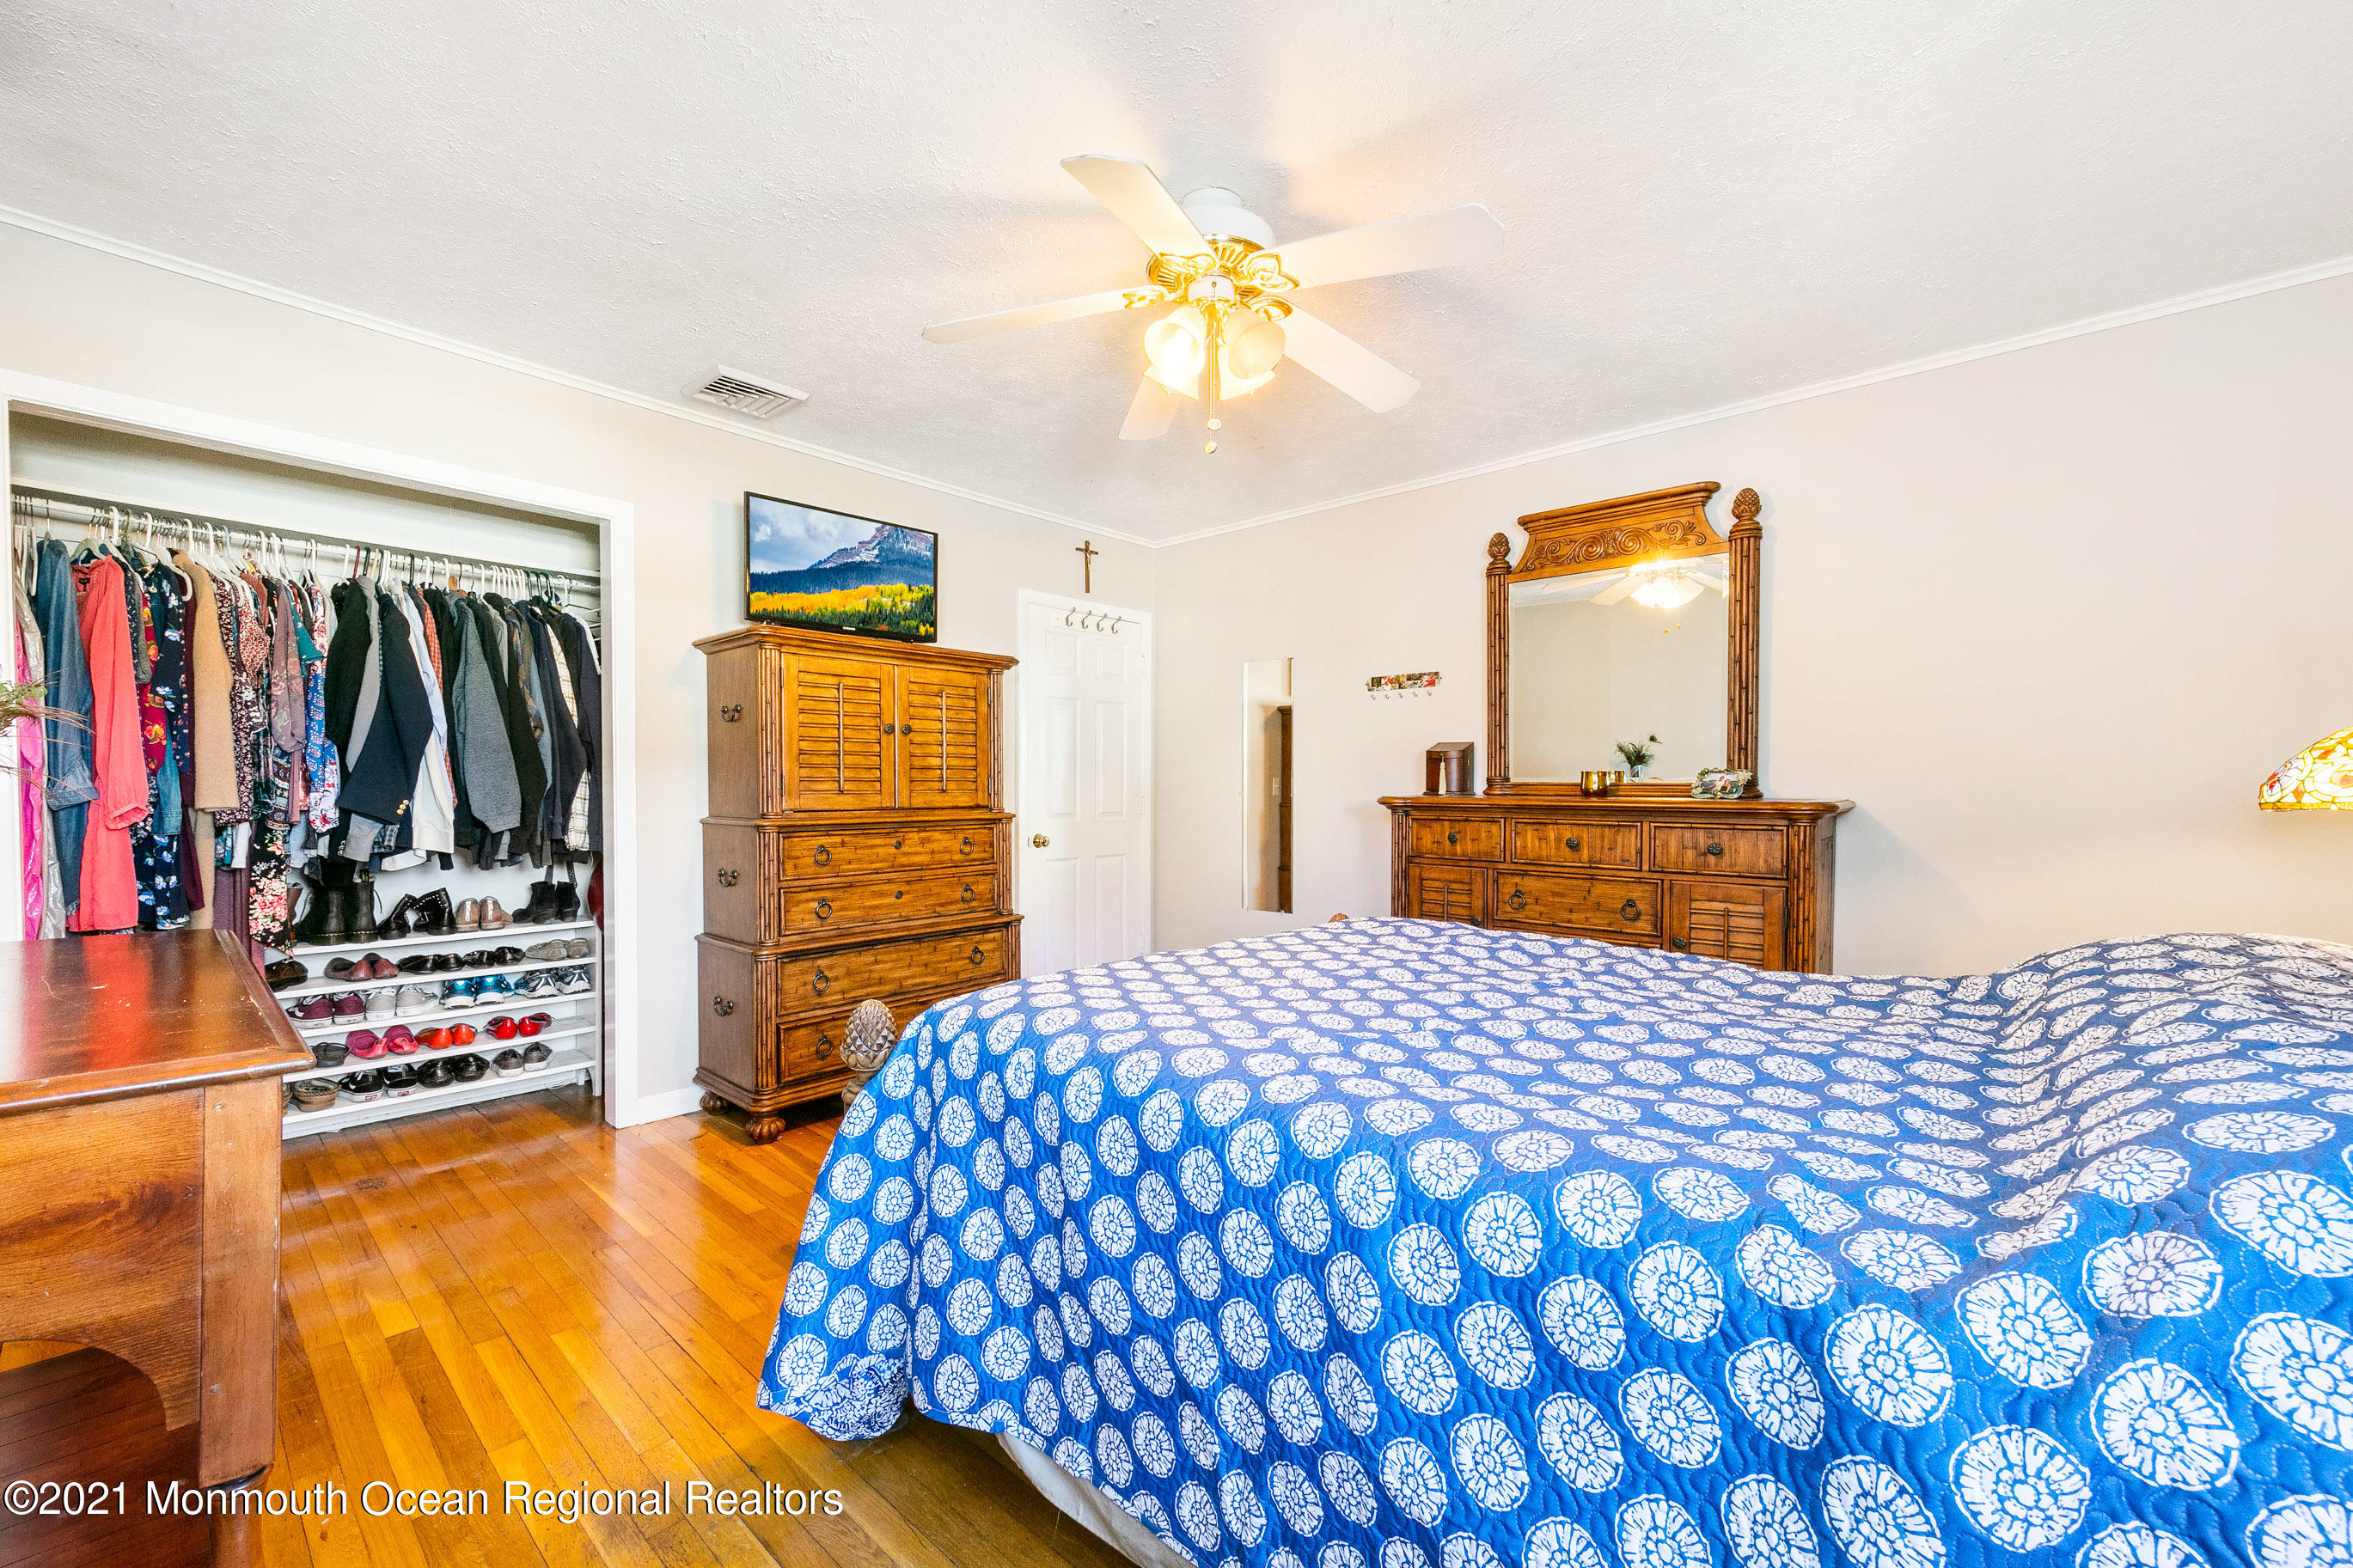 1406 Patton Street, Point Pleasant, New Jersey 08742, 2 Bedrooms Bedrooms, ,1 BathroomBathrooms,Single Family,For Sale,1406 Patton Street,1,22110651